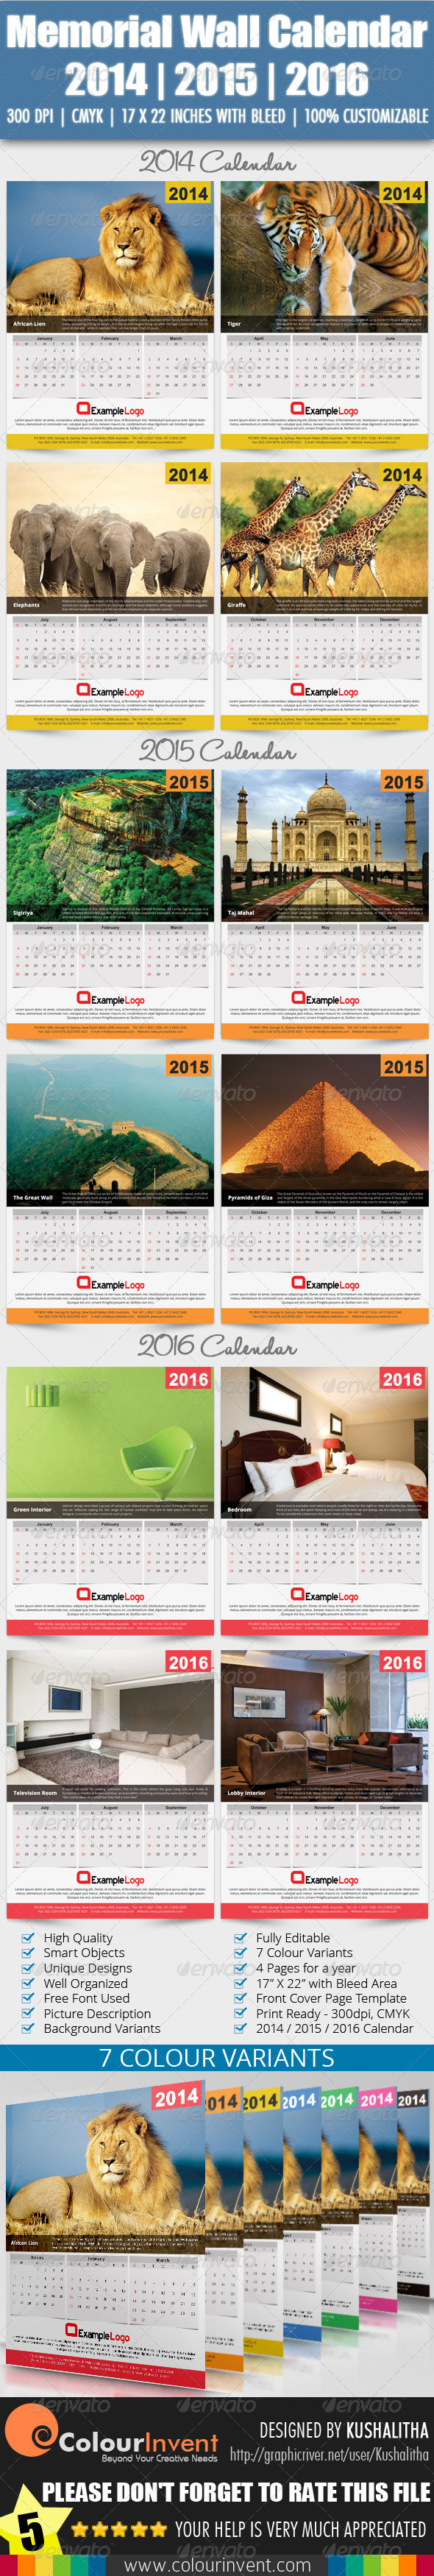 Memorial Wall Calendar 2014 | 2015 | 2016 - Calendars Stationery